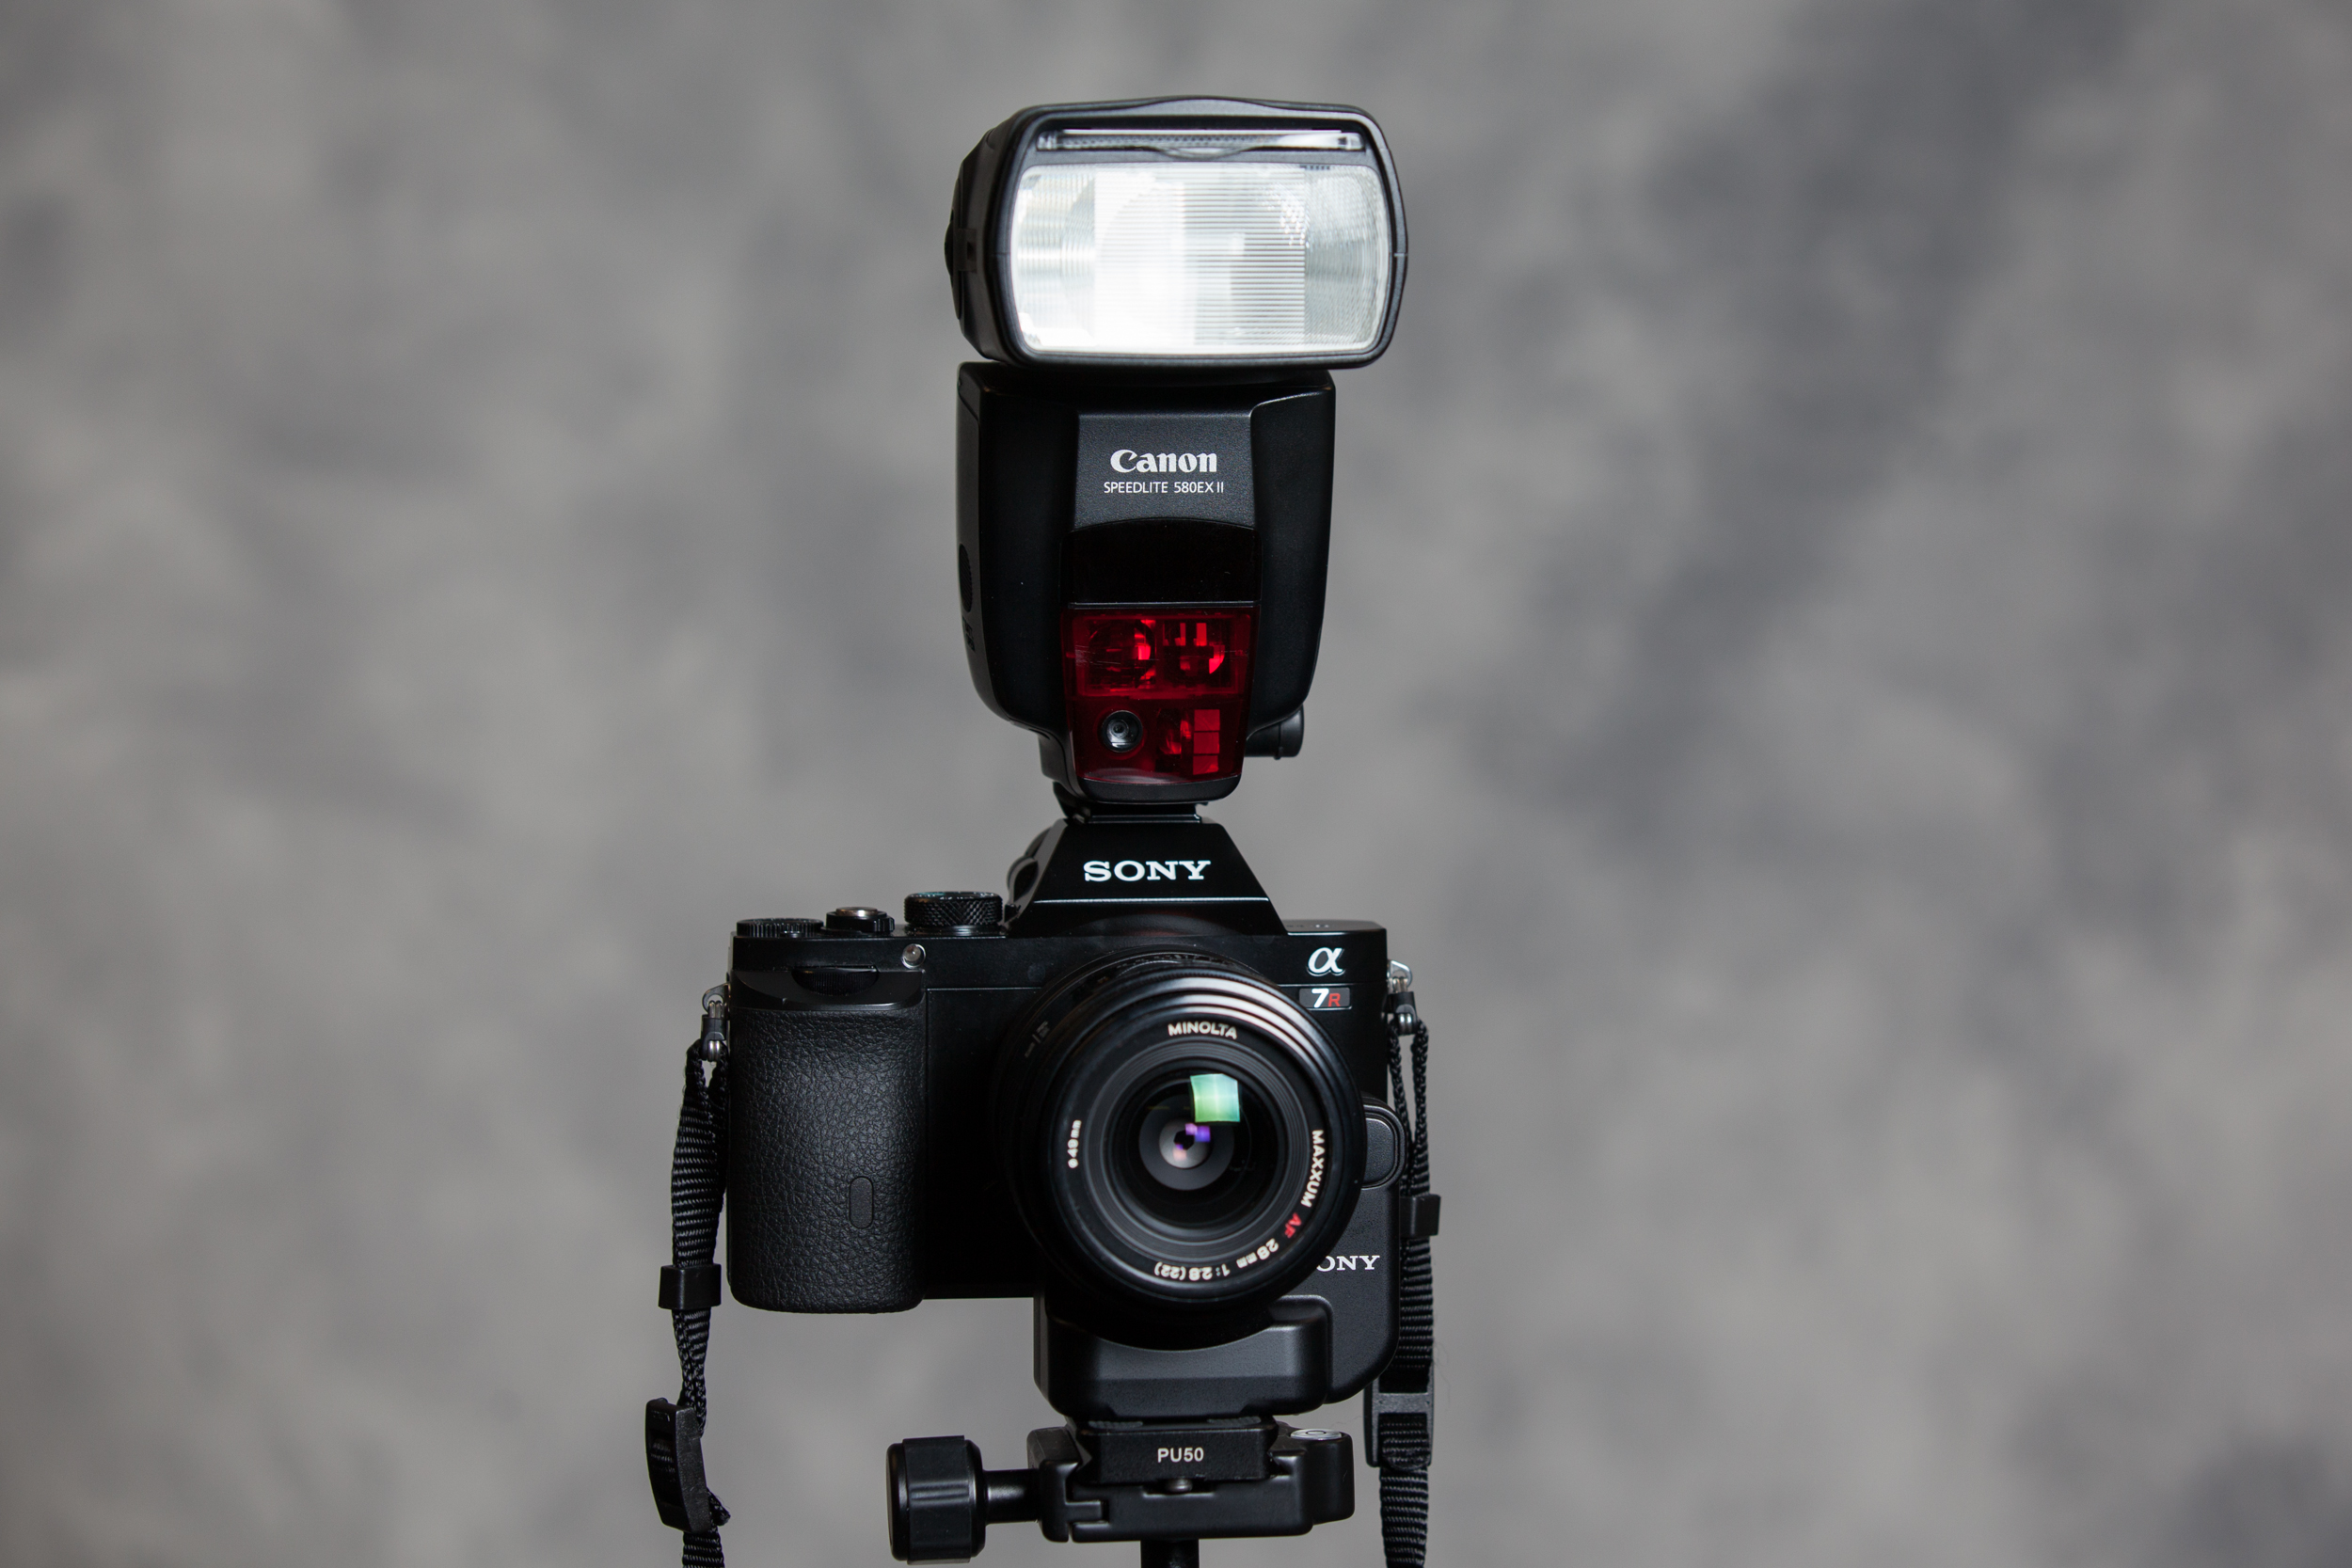 Using a Canon Speedlite Flash with a Sony A7